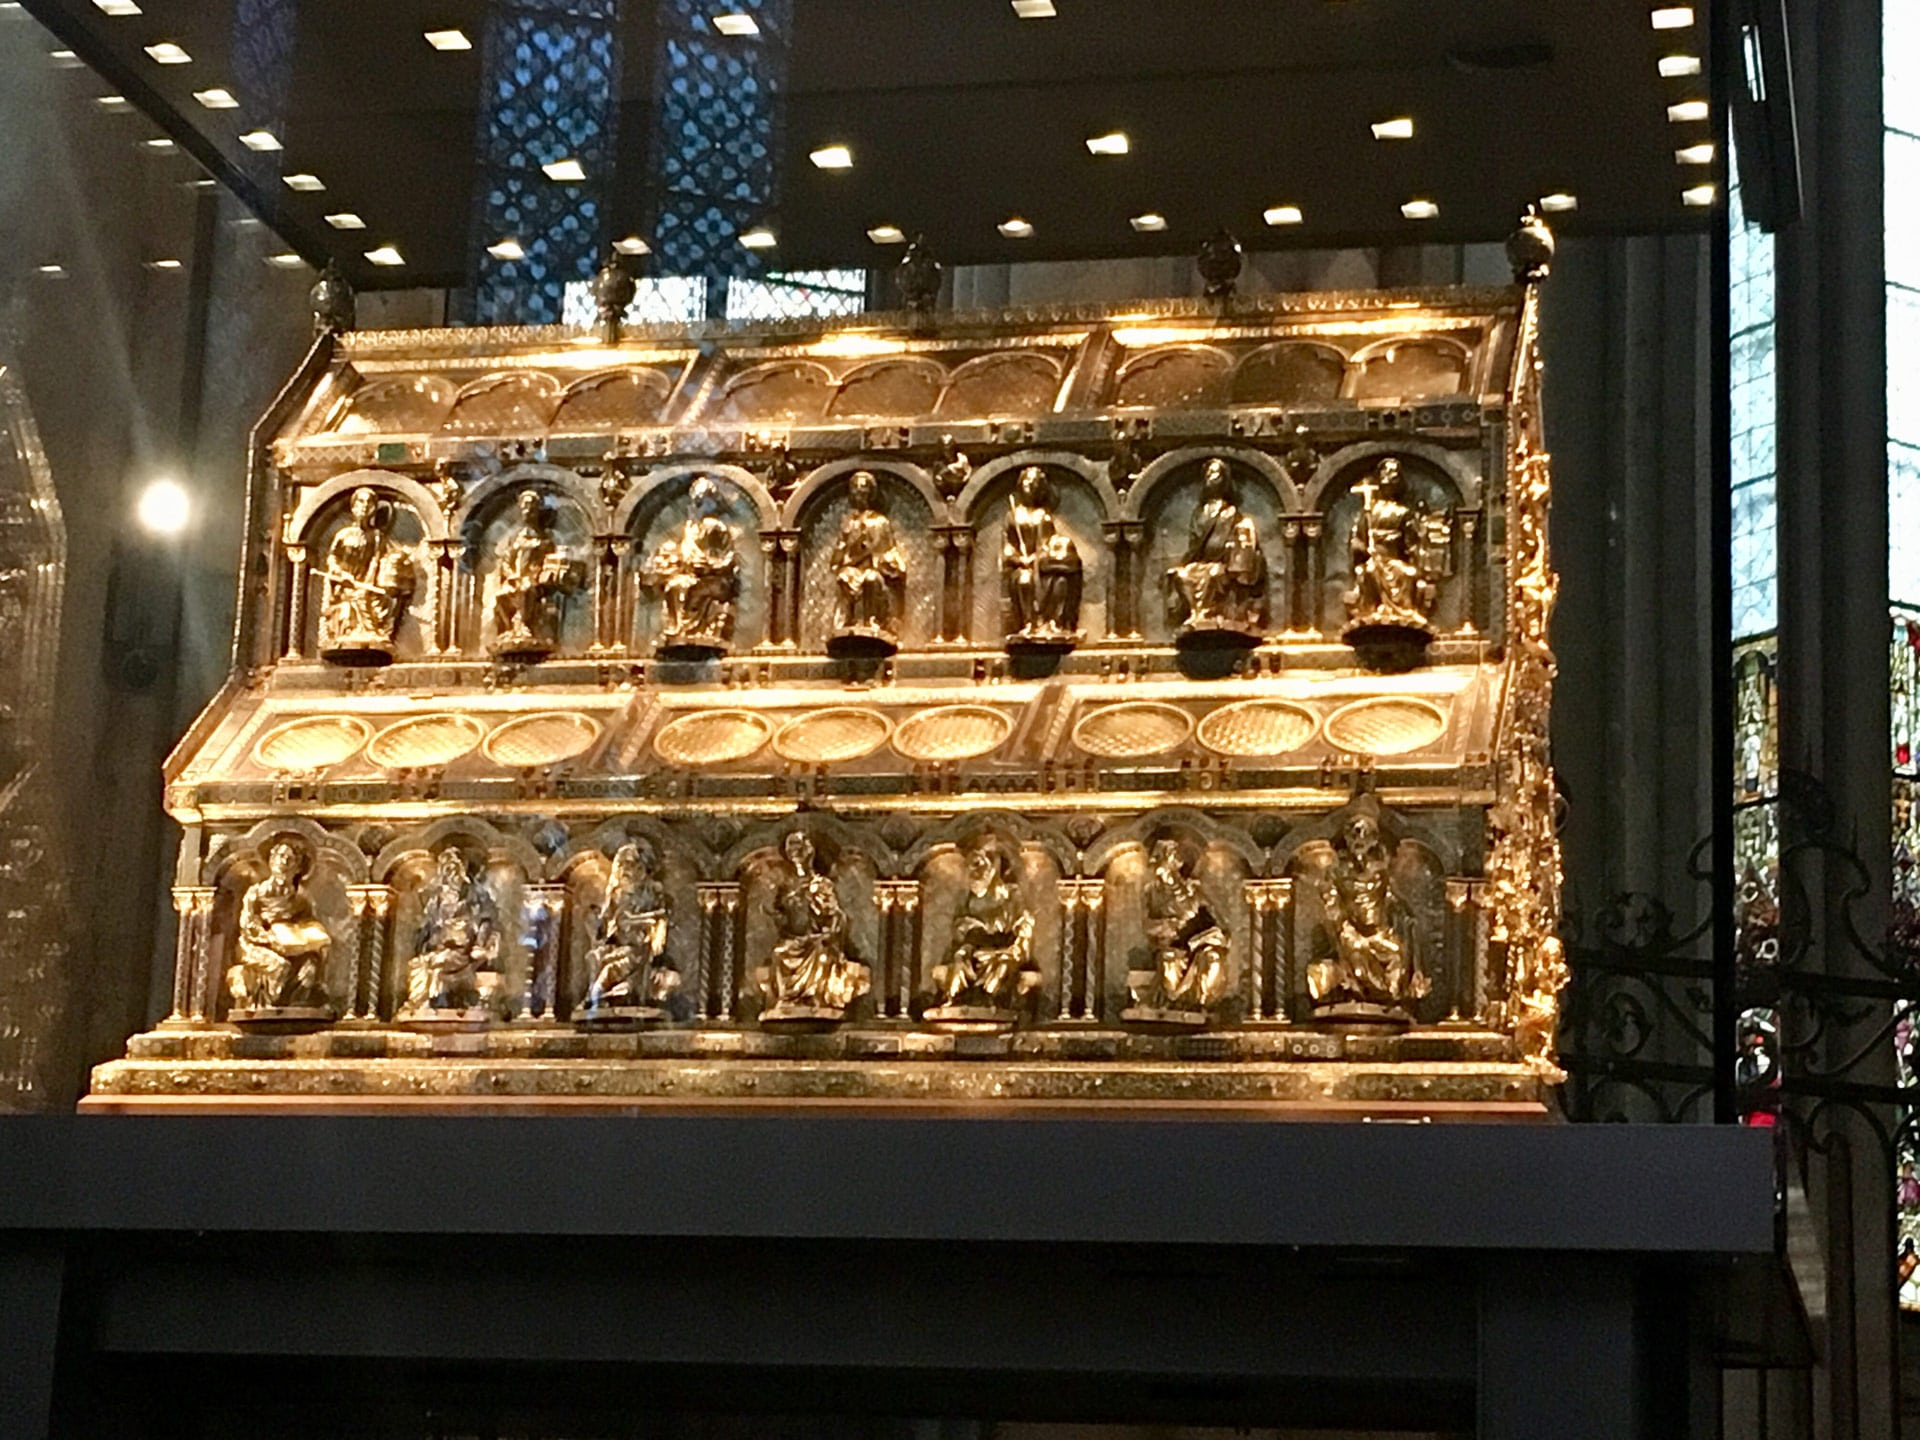 Blog: Remarkable reliquary in cathedral in Cologne